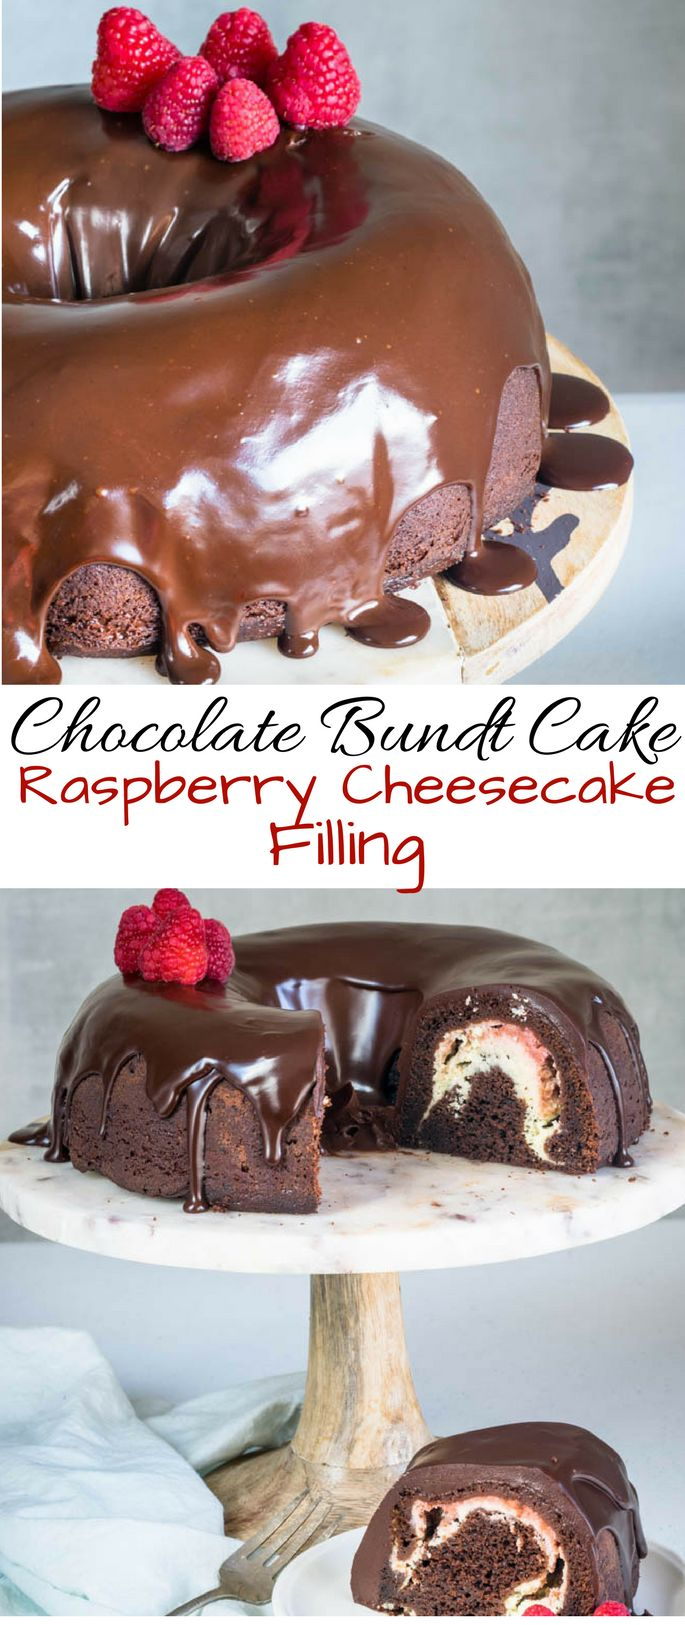 Chocolate Bundt Cake with Raspberry Cheesecake Filling | Pies and Tacos #cake #dessert #cheesecake #chocolate